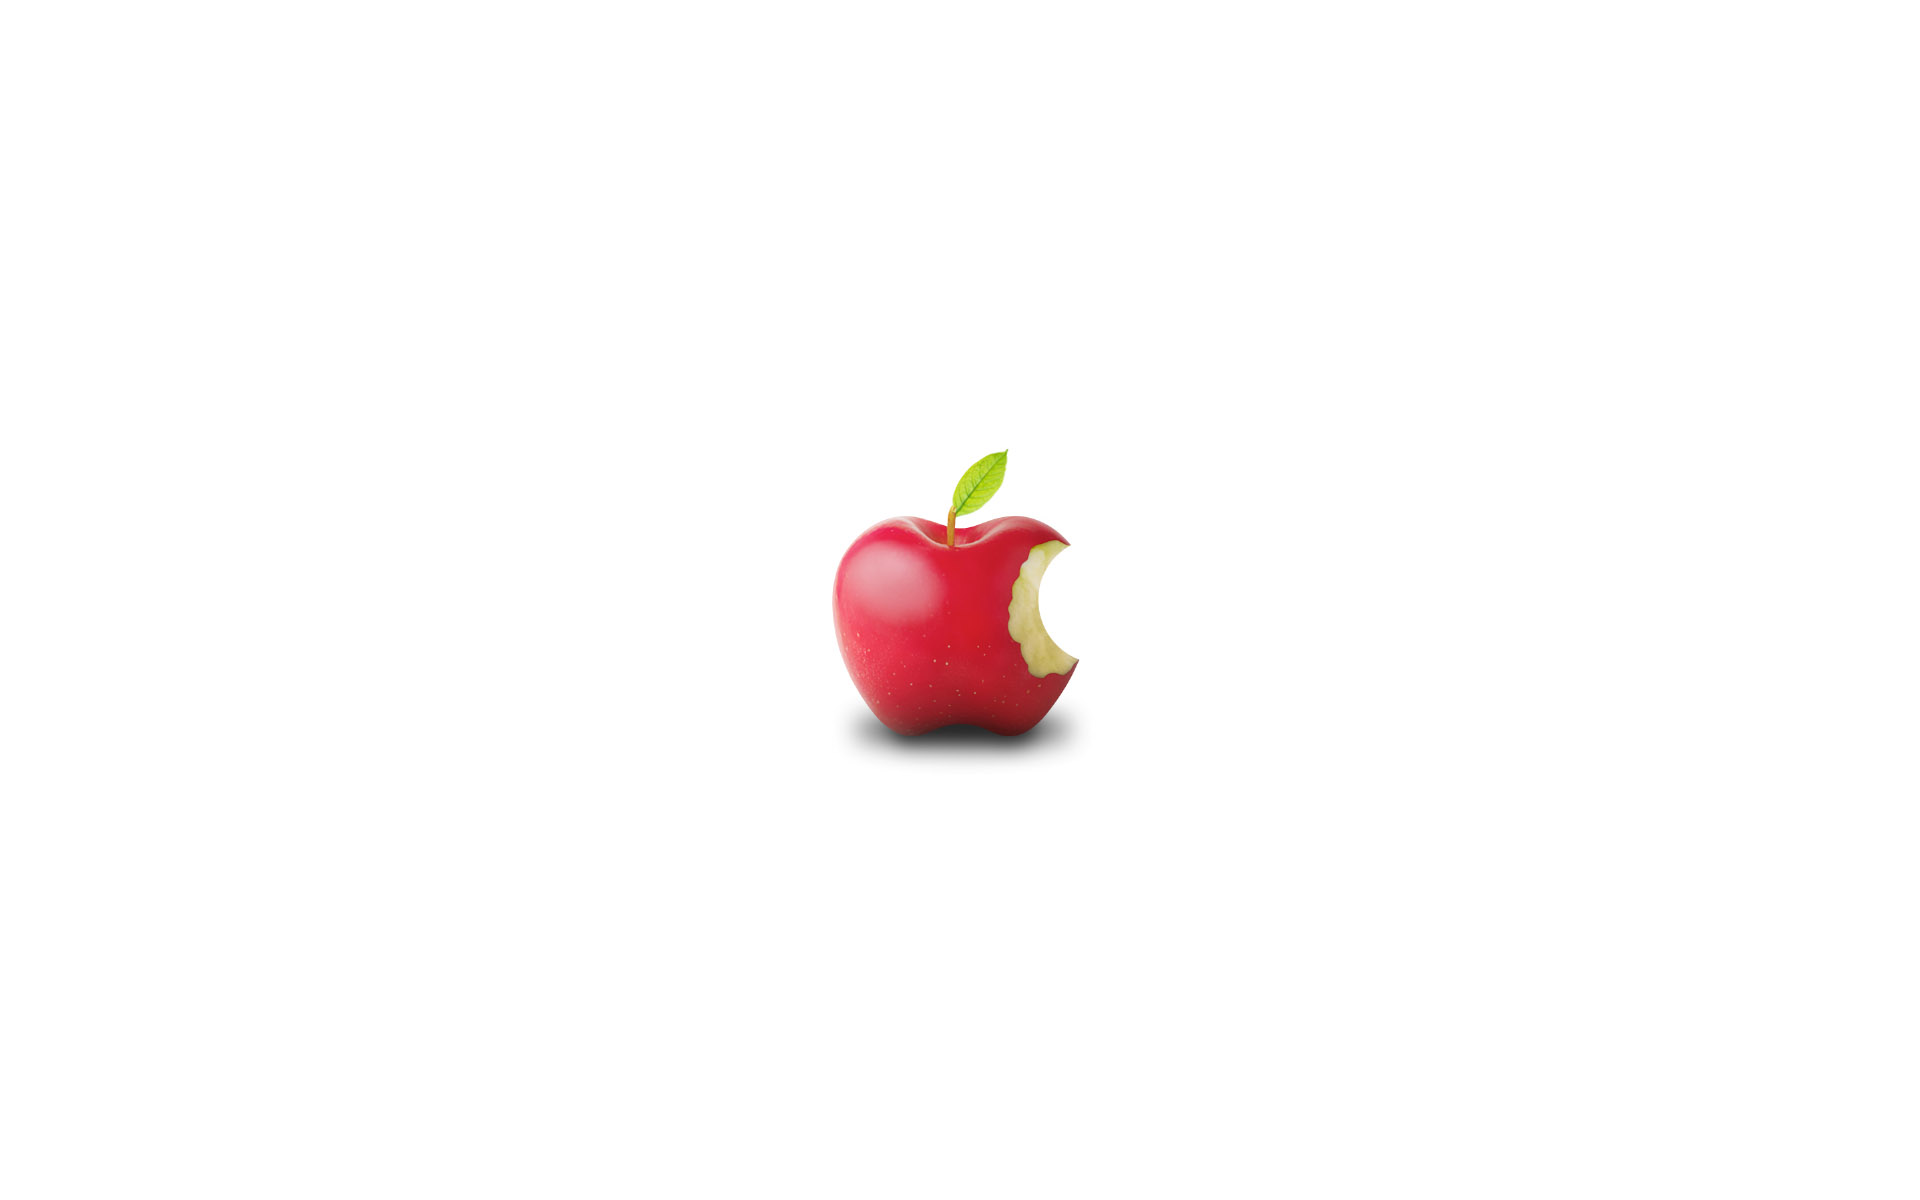 Apple wallpaper high definition 21882